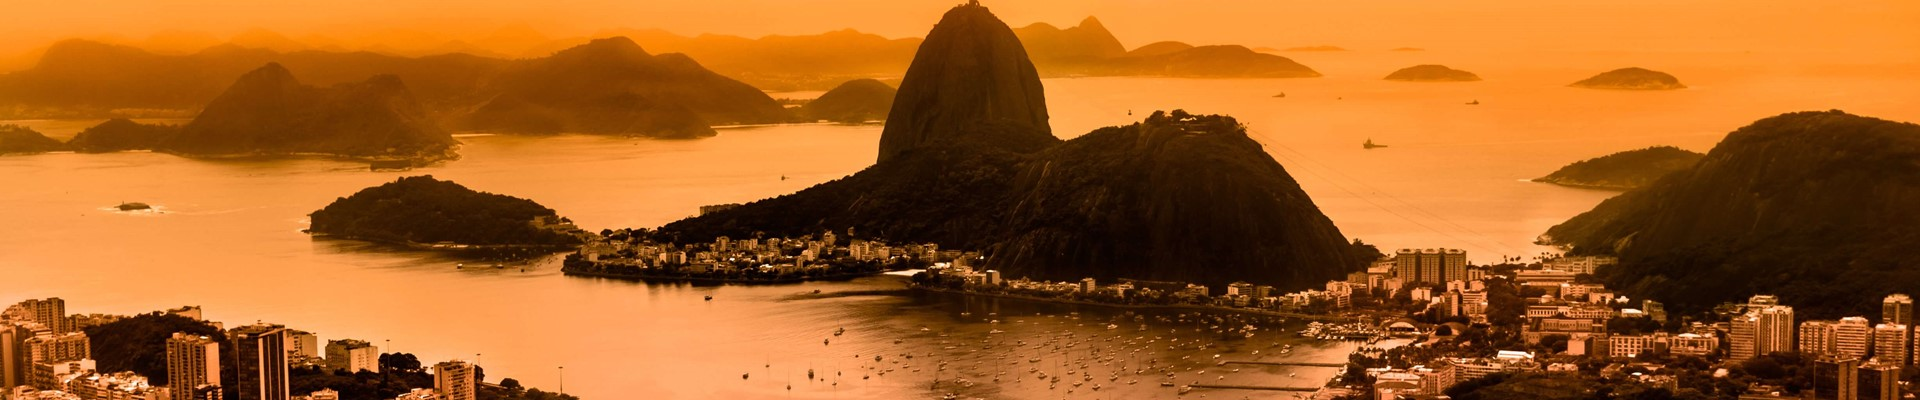 Sugarloaf Mountain - Brazil